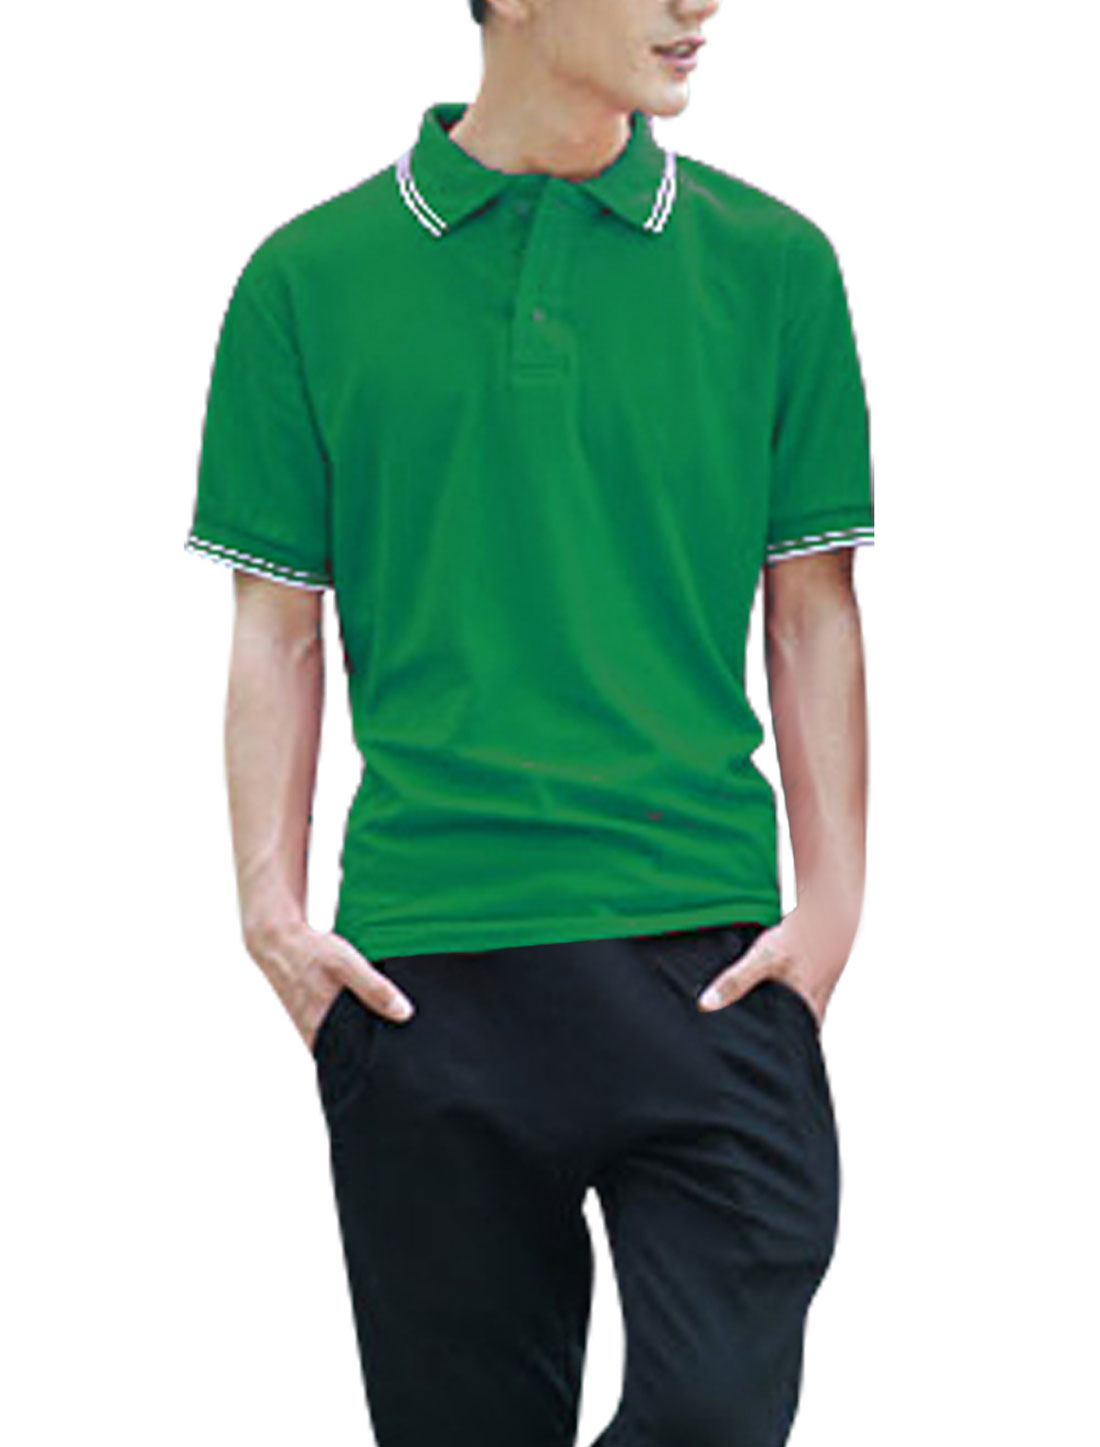 Men Convertible Collar Button Closure Up Polo Shirt Green L